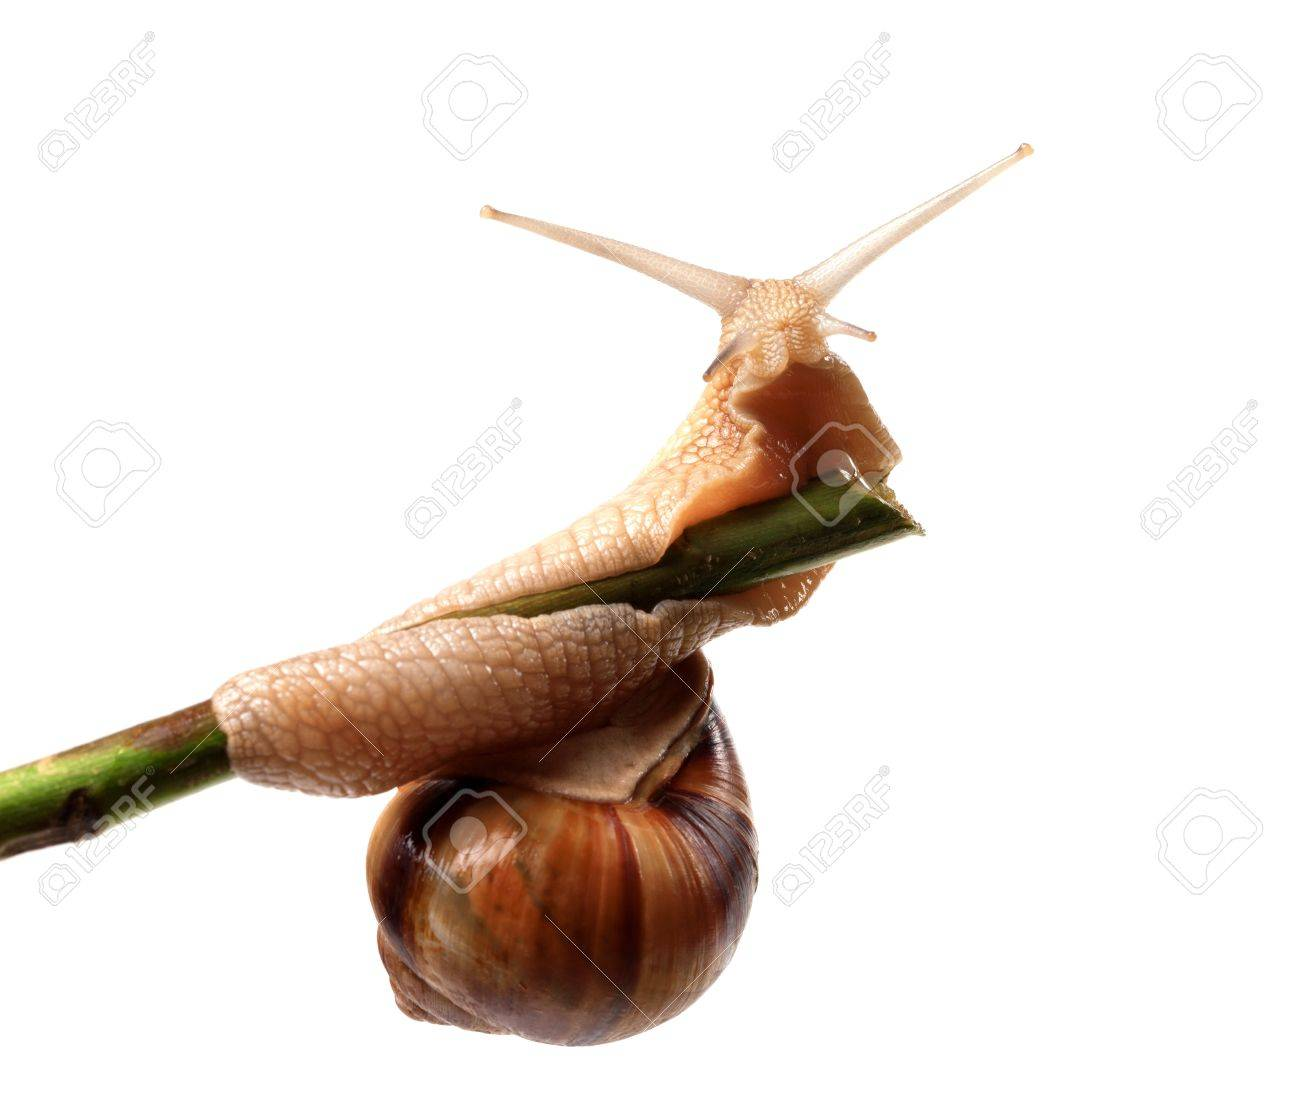 Snail crawling on the stem  Isolated on white background Stock Photo - 16486546